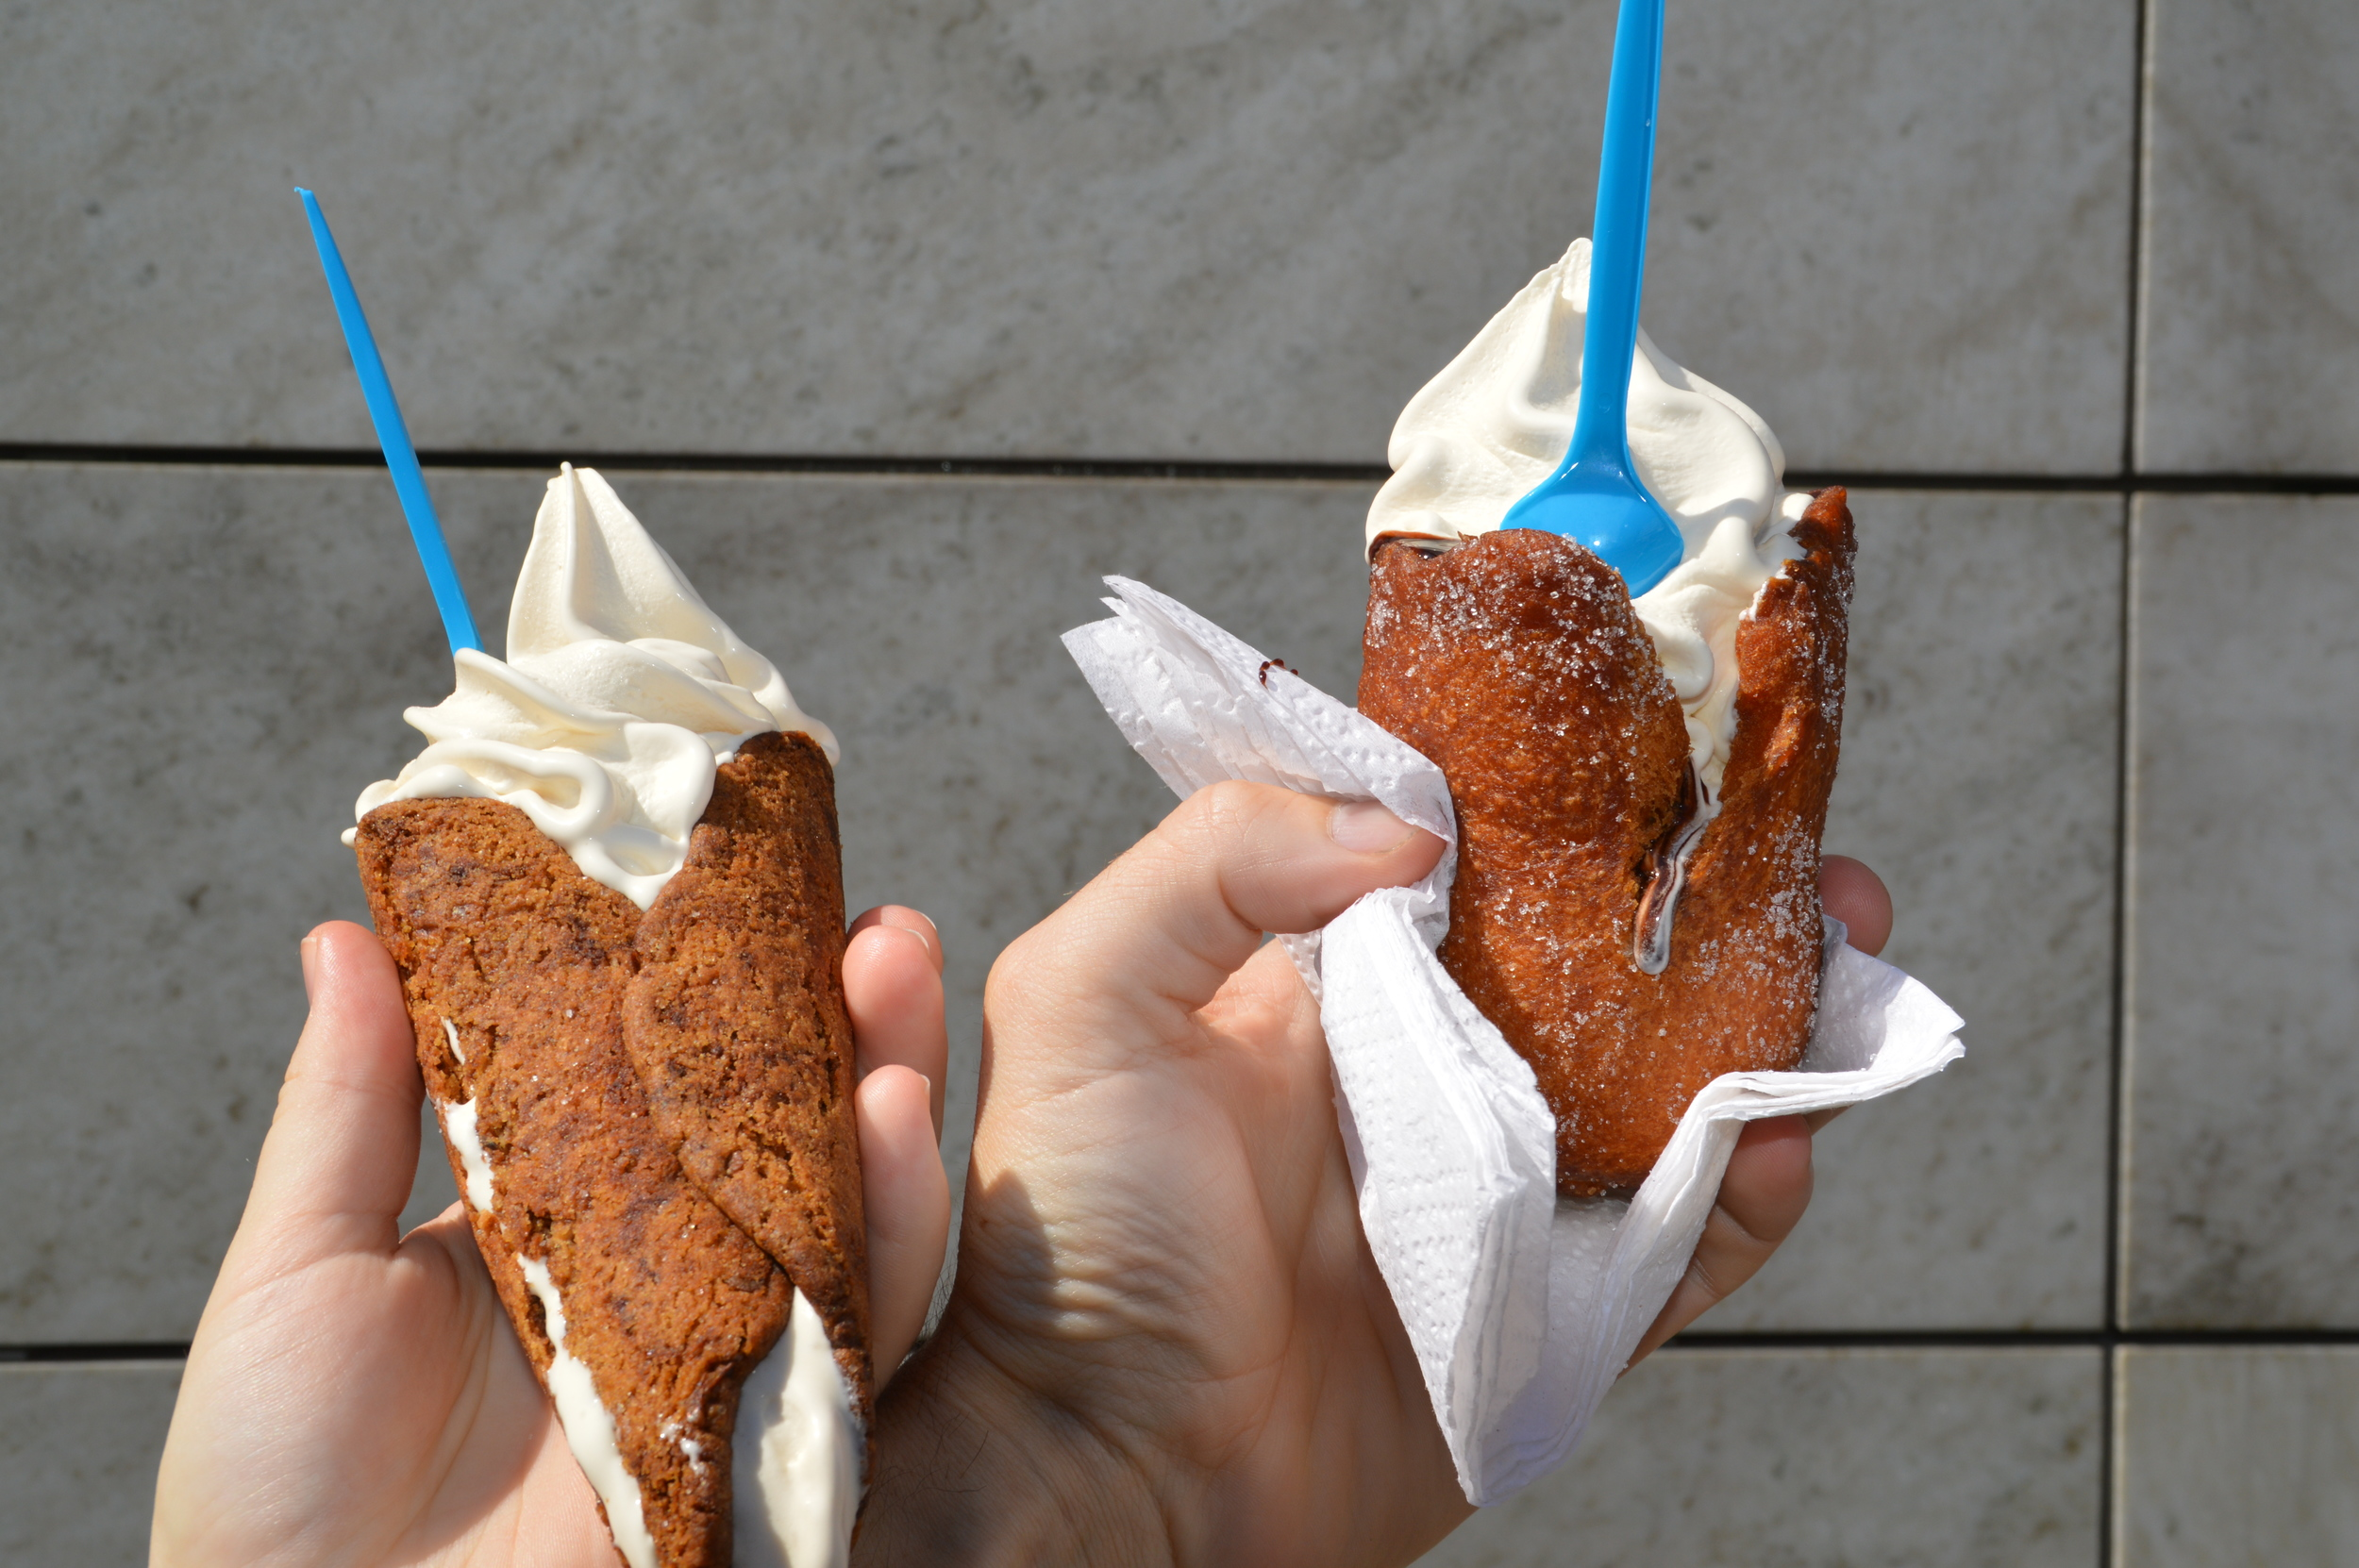 Vegan soft serve in a donut or cookie cone, from Jonsborg in Gothenburg.